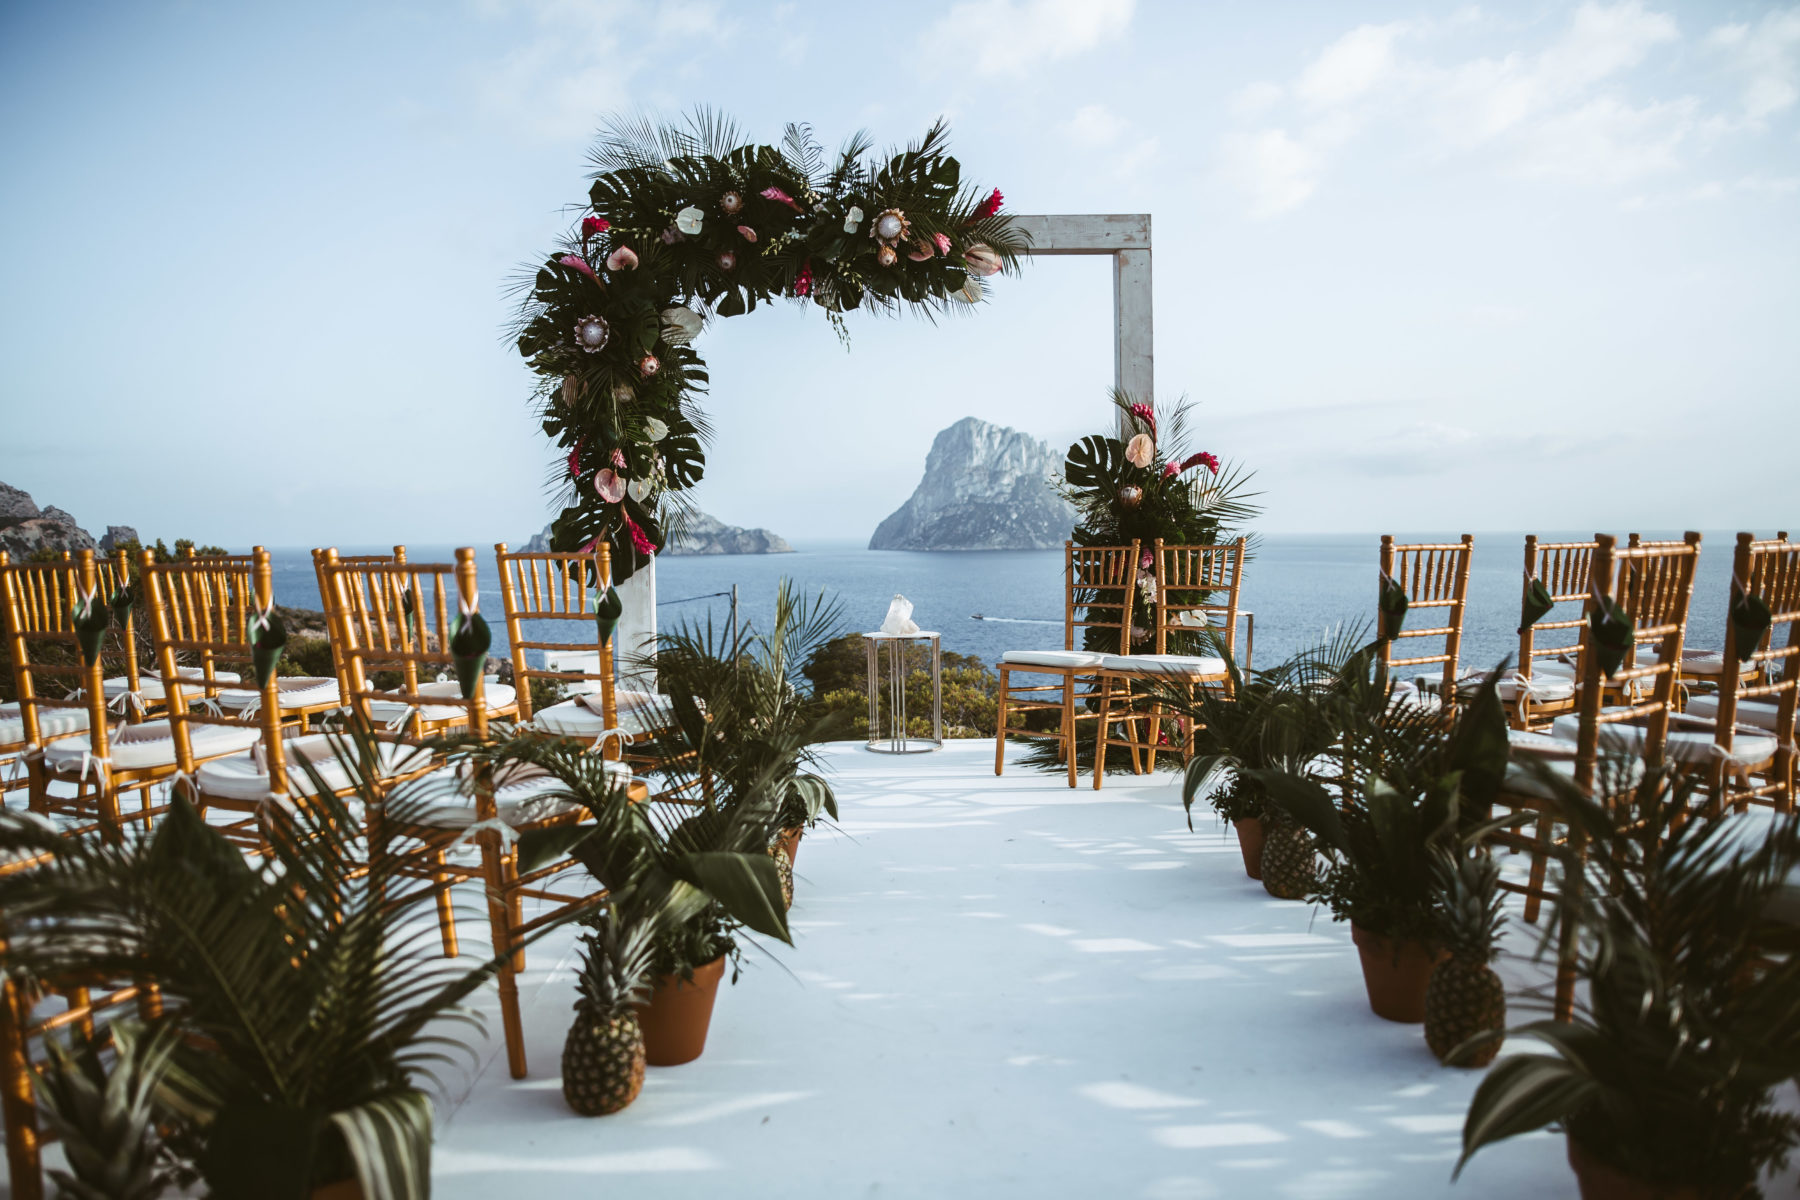 mallorca-hochzeit-ibiza-la-escollera-ibiza-destination-wedding-mallorca-weddings photographer,.jpg